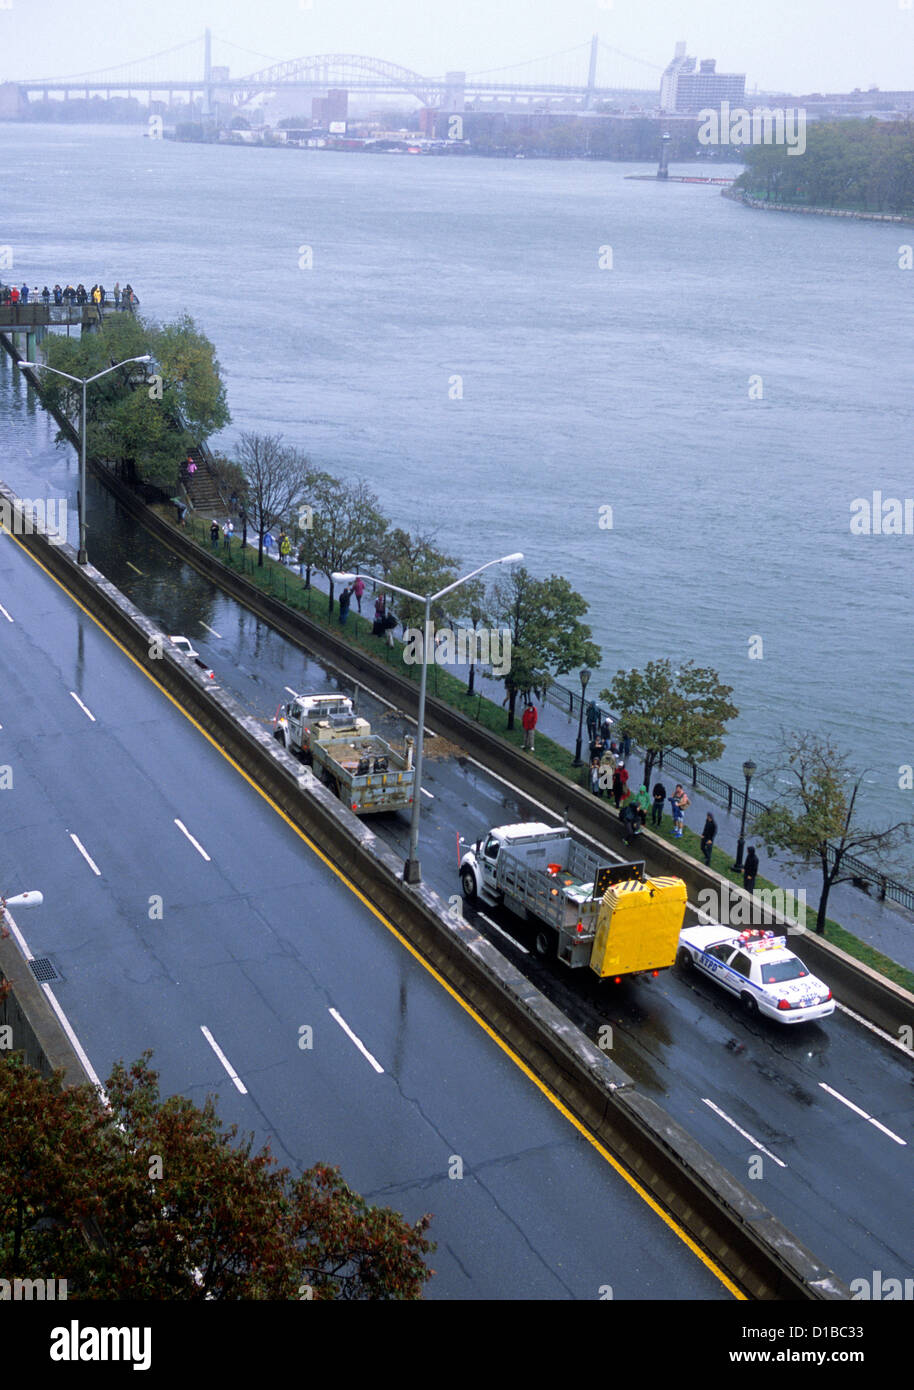 Aerial of Hurricane Damage to New York City Flooding on FDR Drive USA - Stock Image